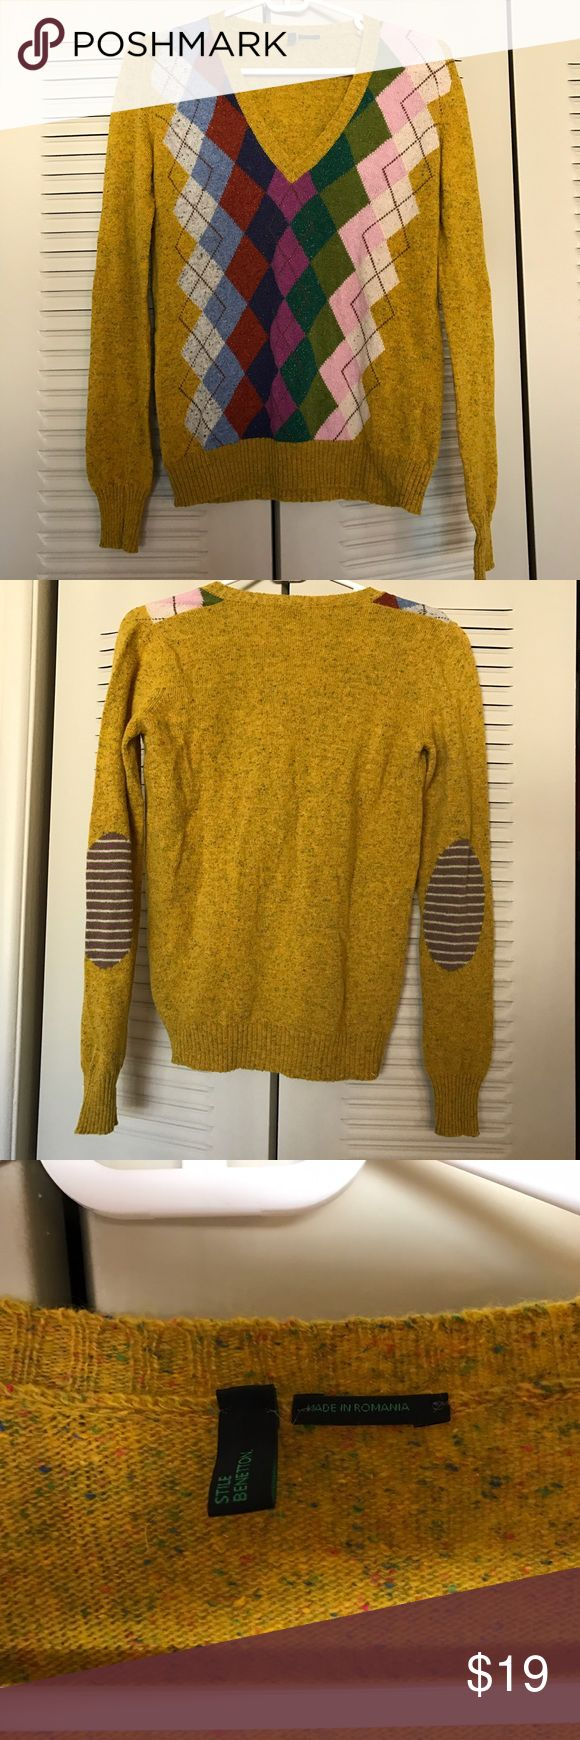 Benetton Argyle Sweater Size S. Great condition. V-neck. Adorable elbow pattern. 50% wool. United Colors Of Benetton Sweaters V-Necks